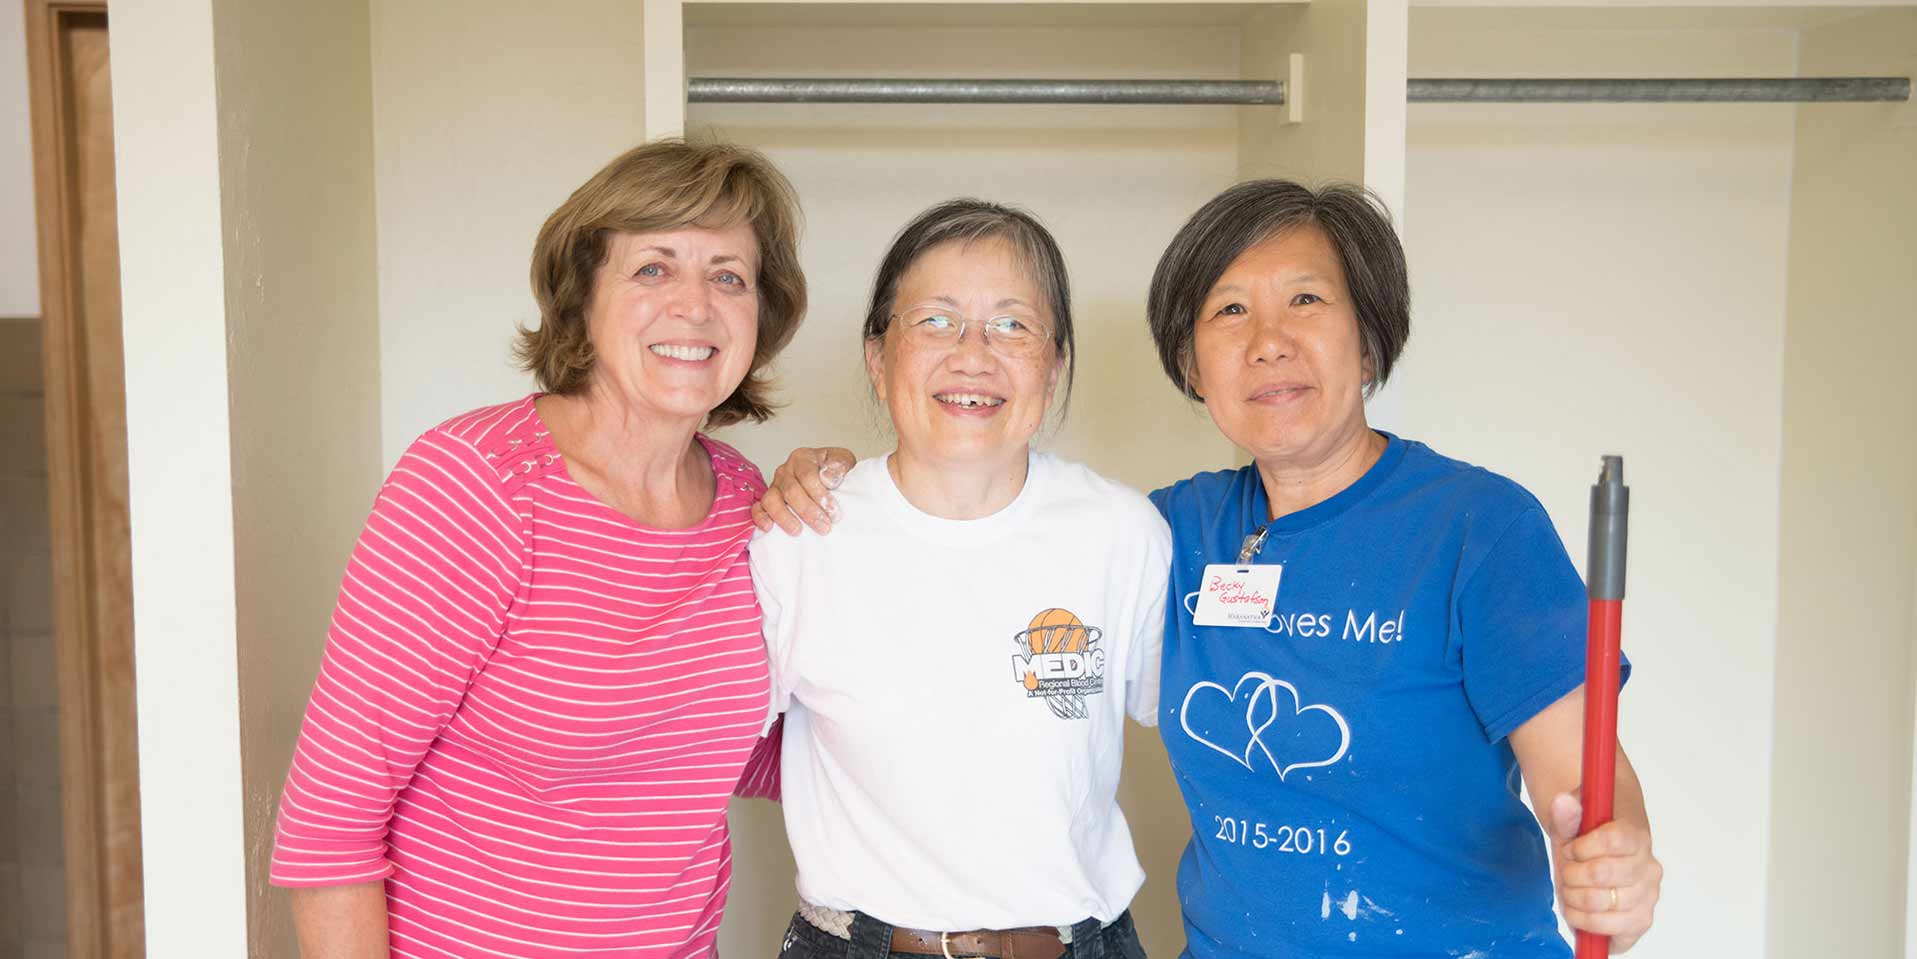 Photo of three Union college alumnae who helped renovate Rees Hall in 2019